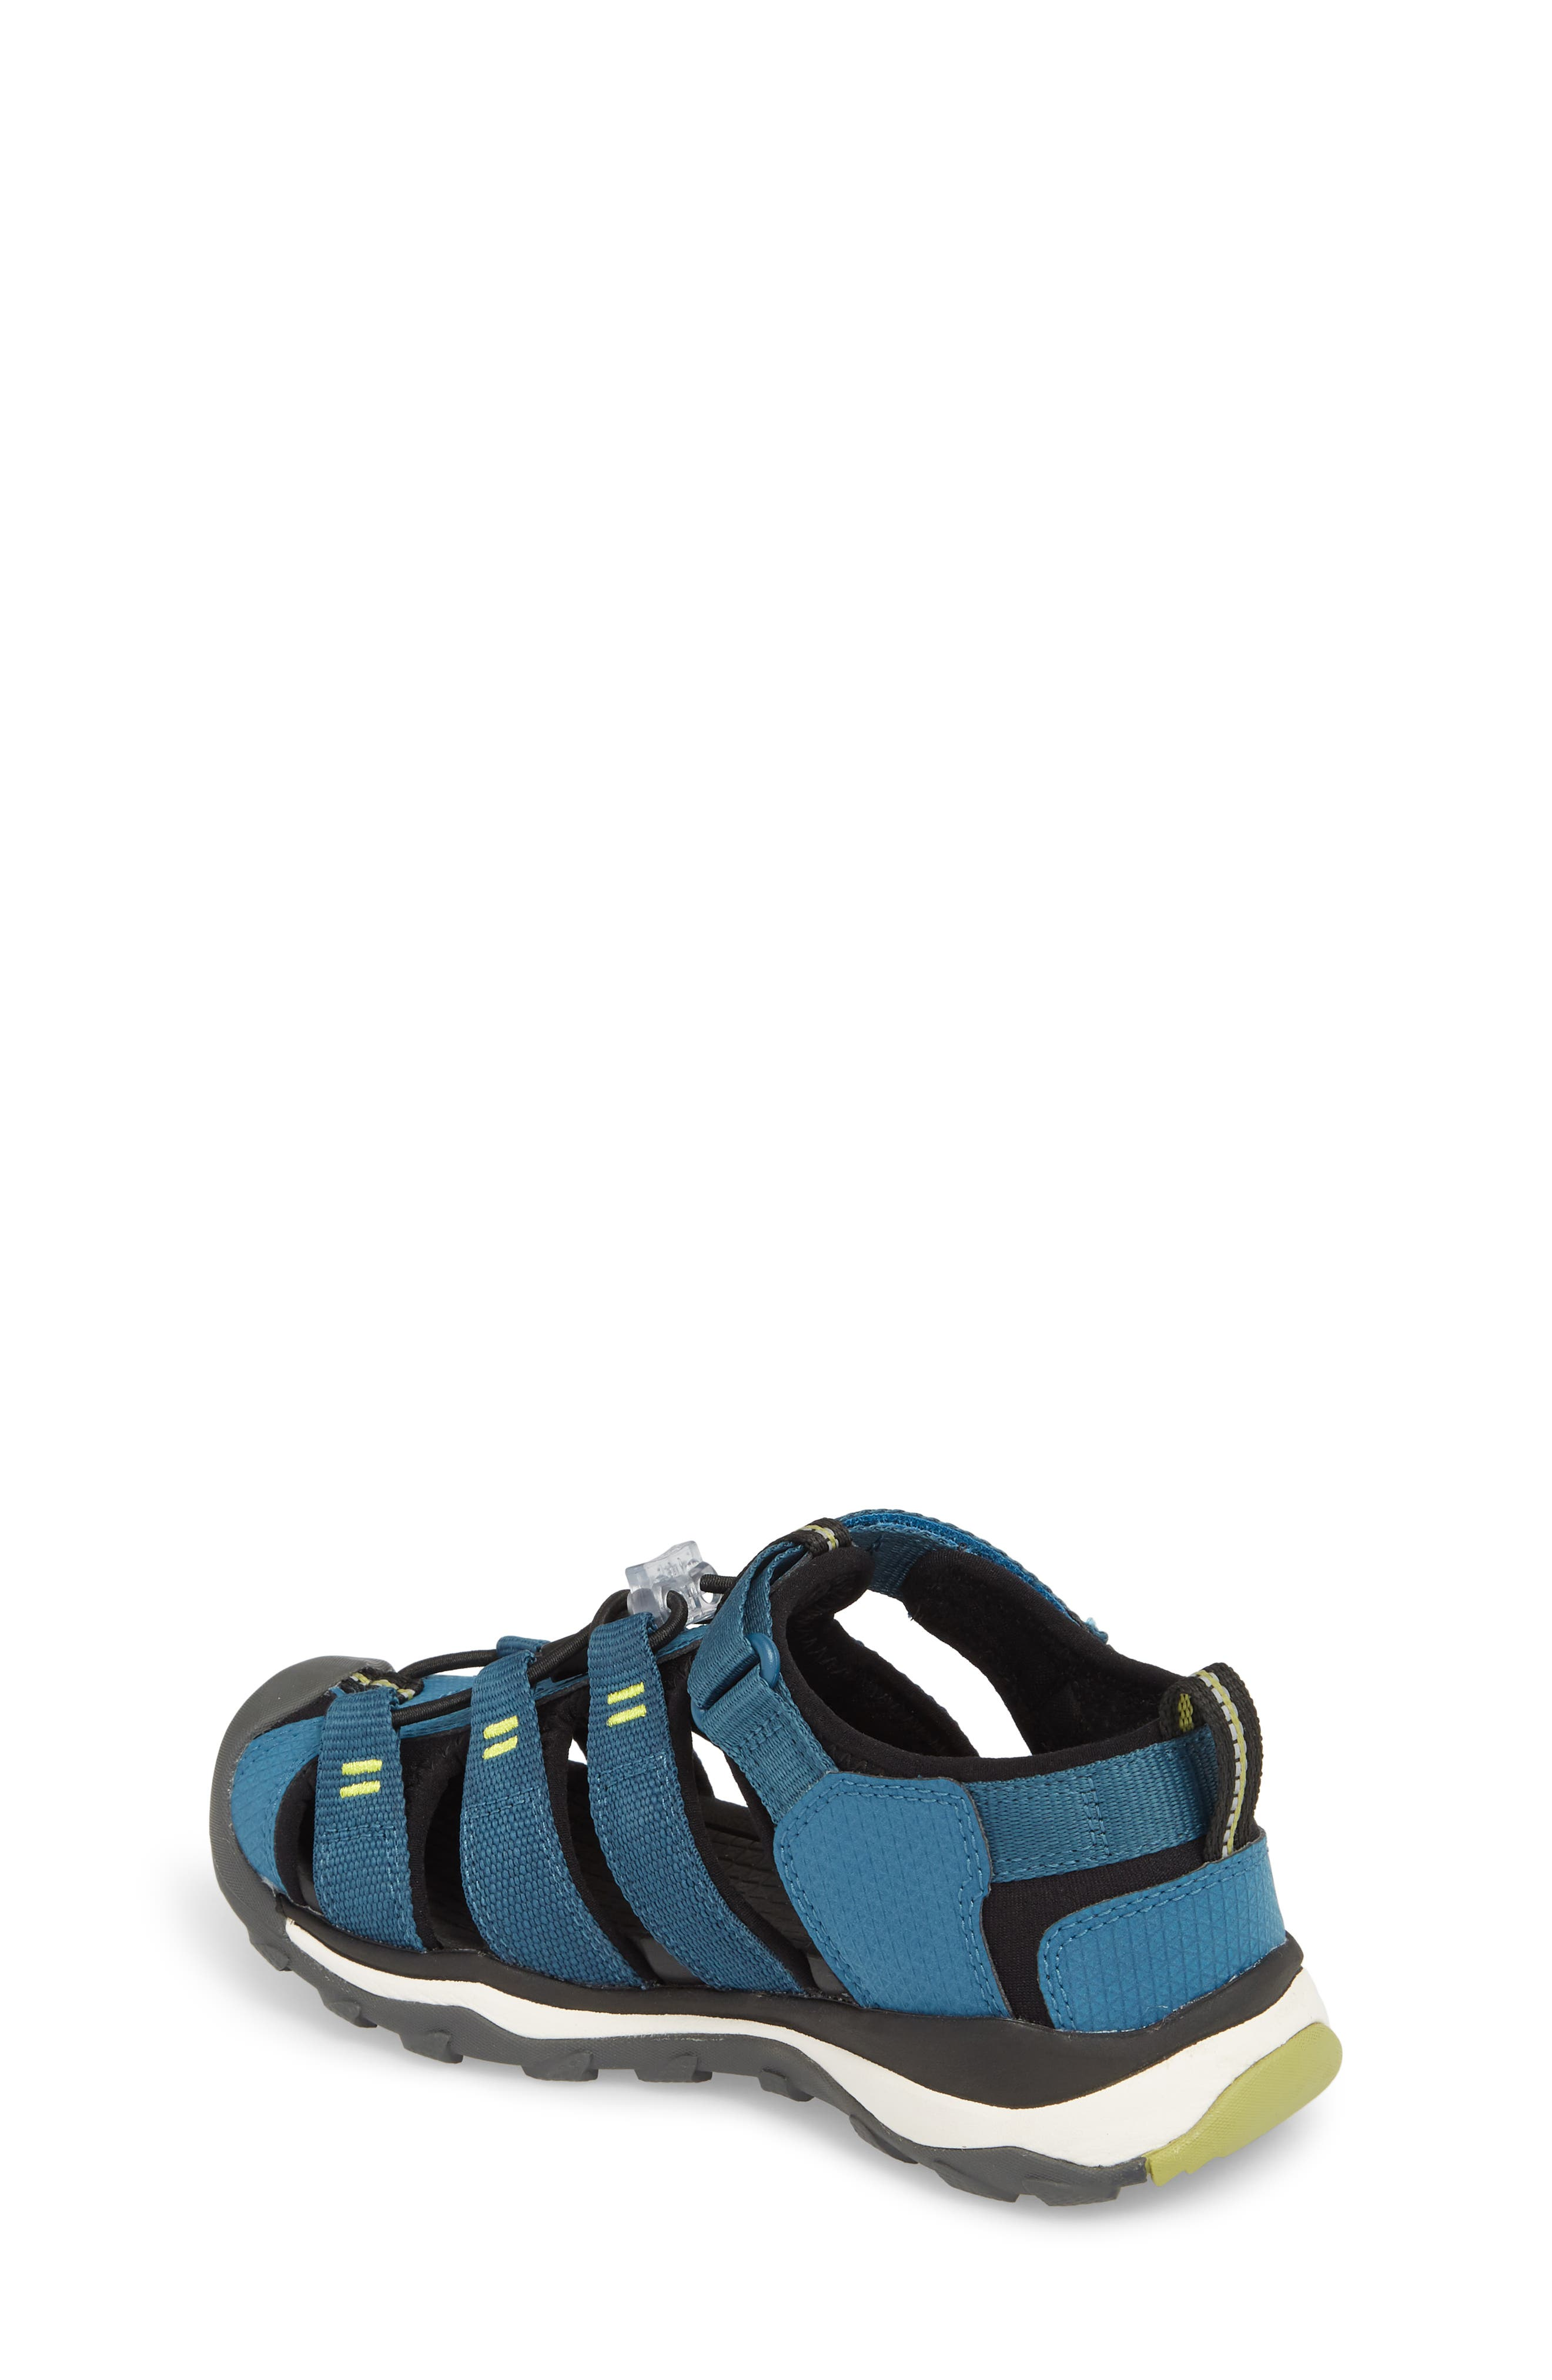 KEEN, Newport Neo H2 Water Friendly Sandal, Alternate thumbnail 2, color, LEGION BLUE/ MOSS